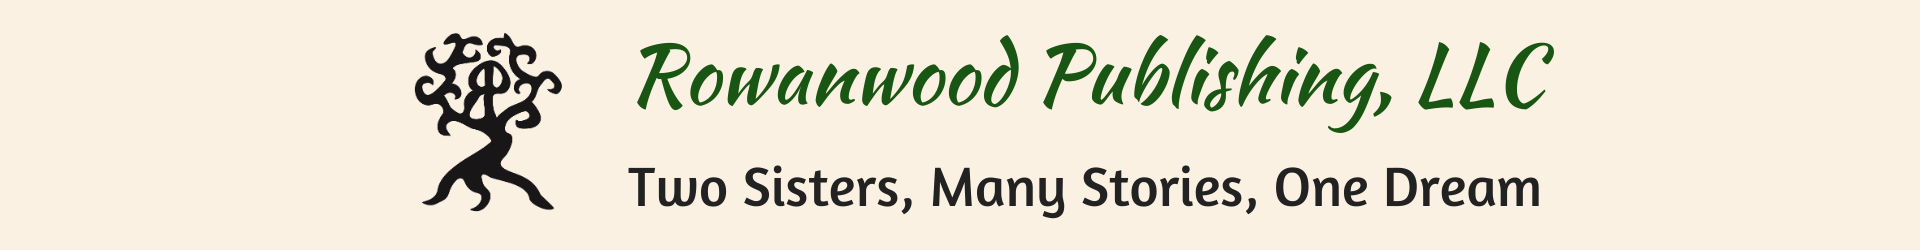 Rowanwood Publishing, LLC